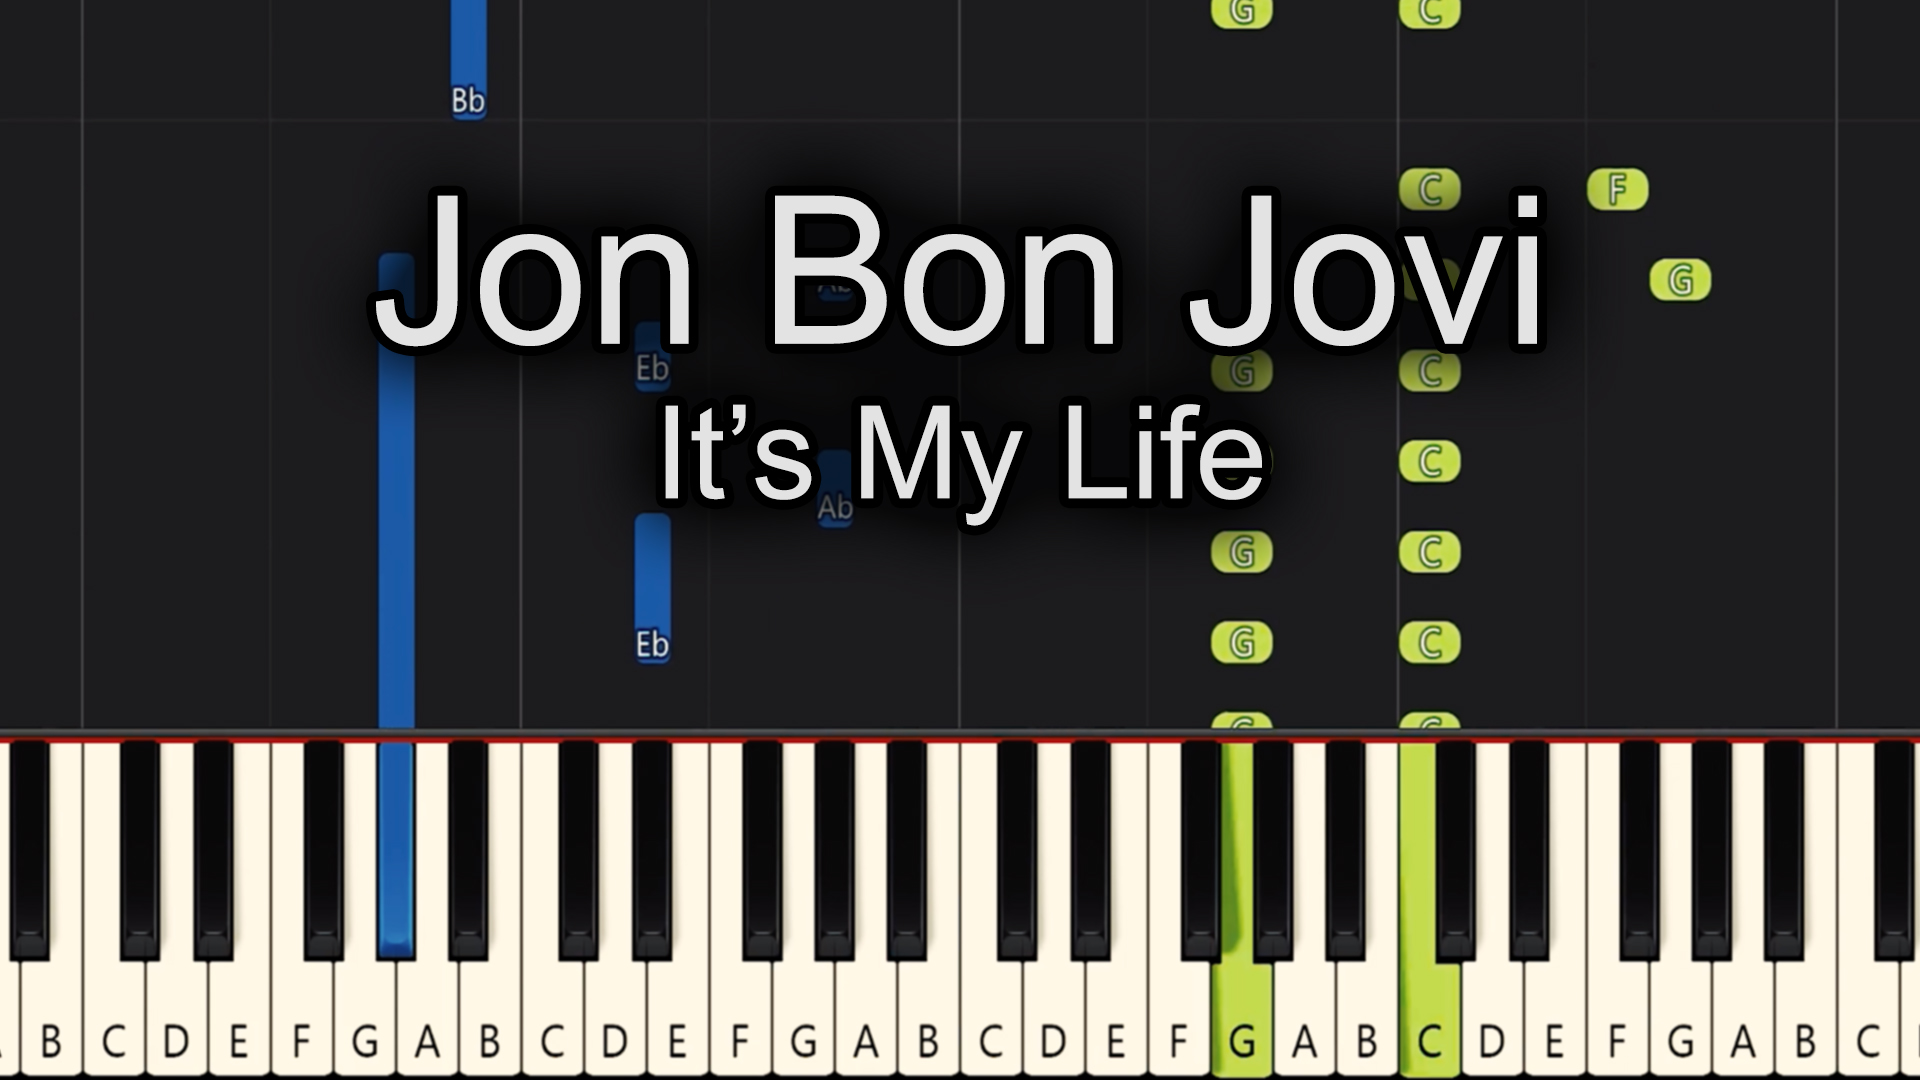 Jon Bon Jovi – It's My Life – Advanced